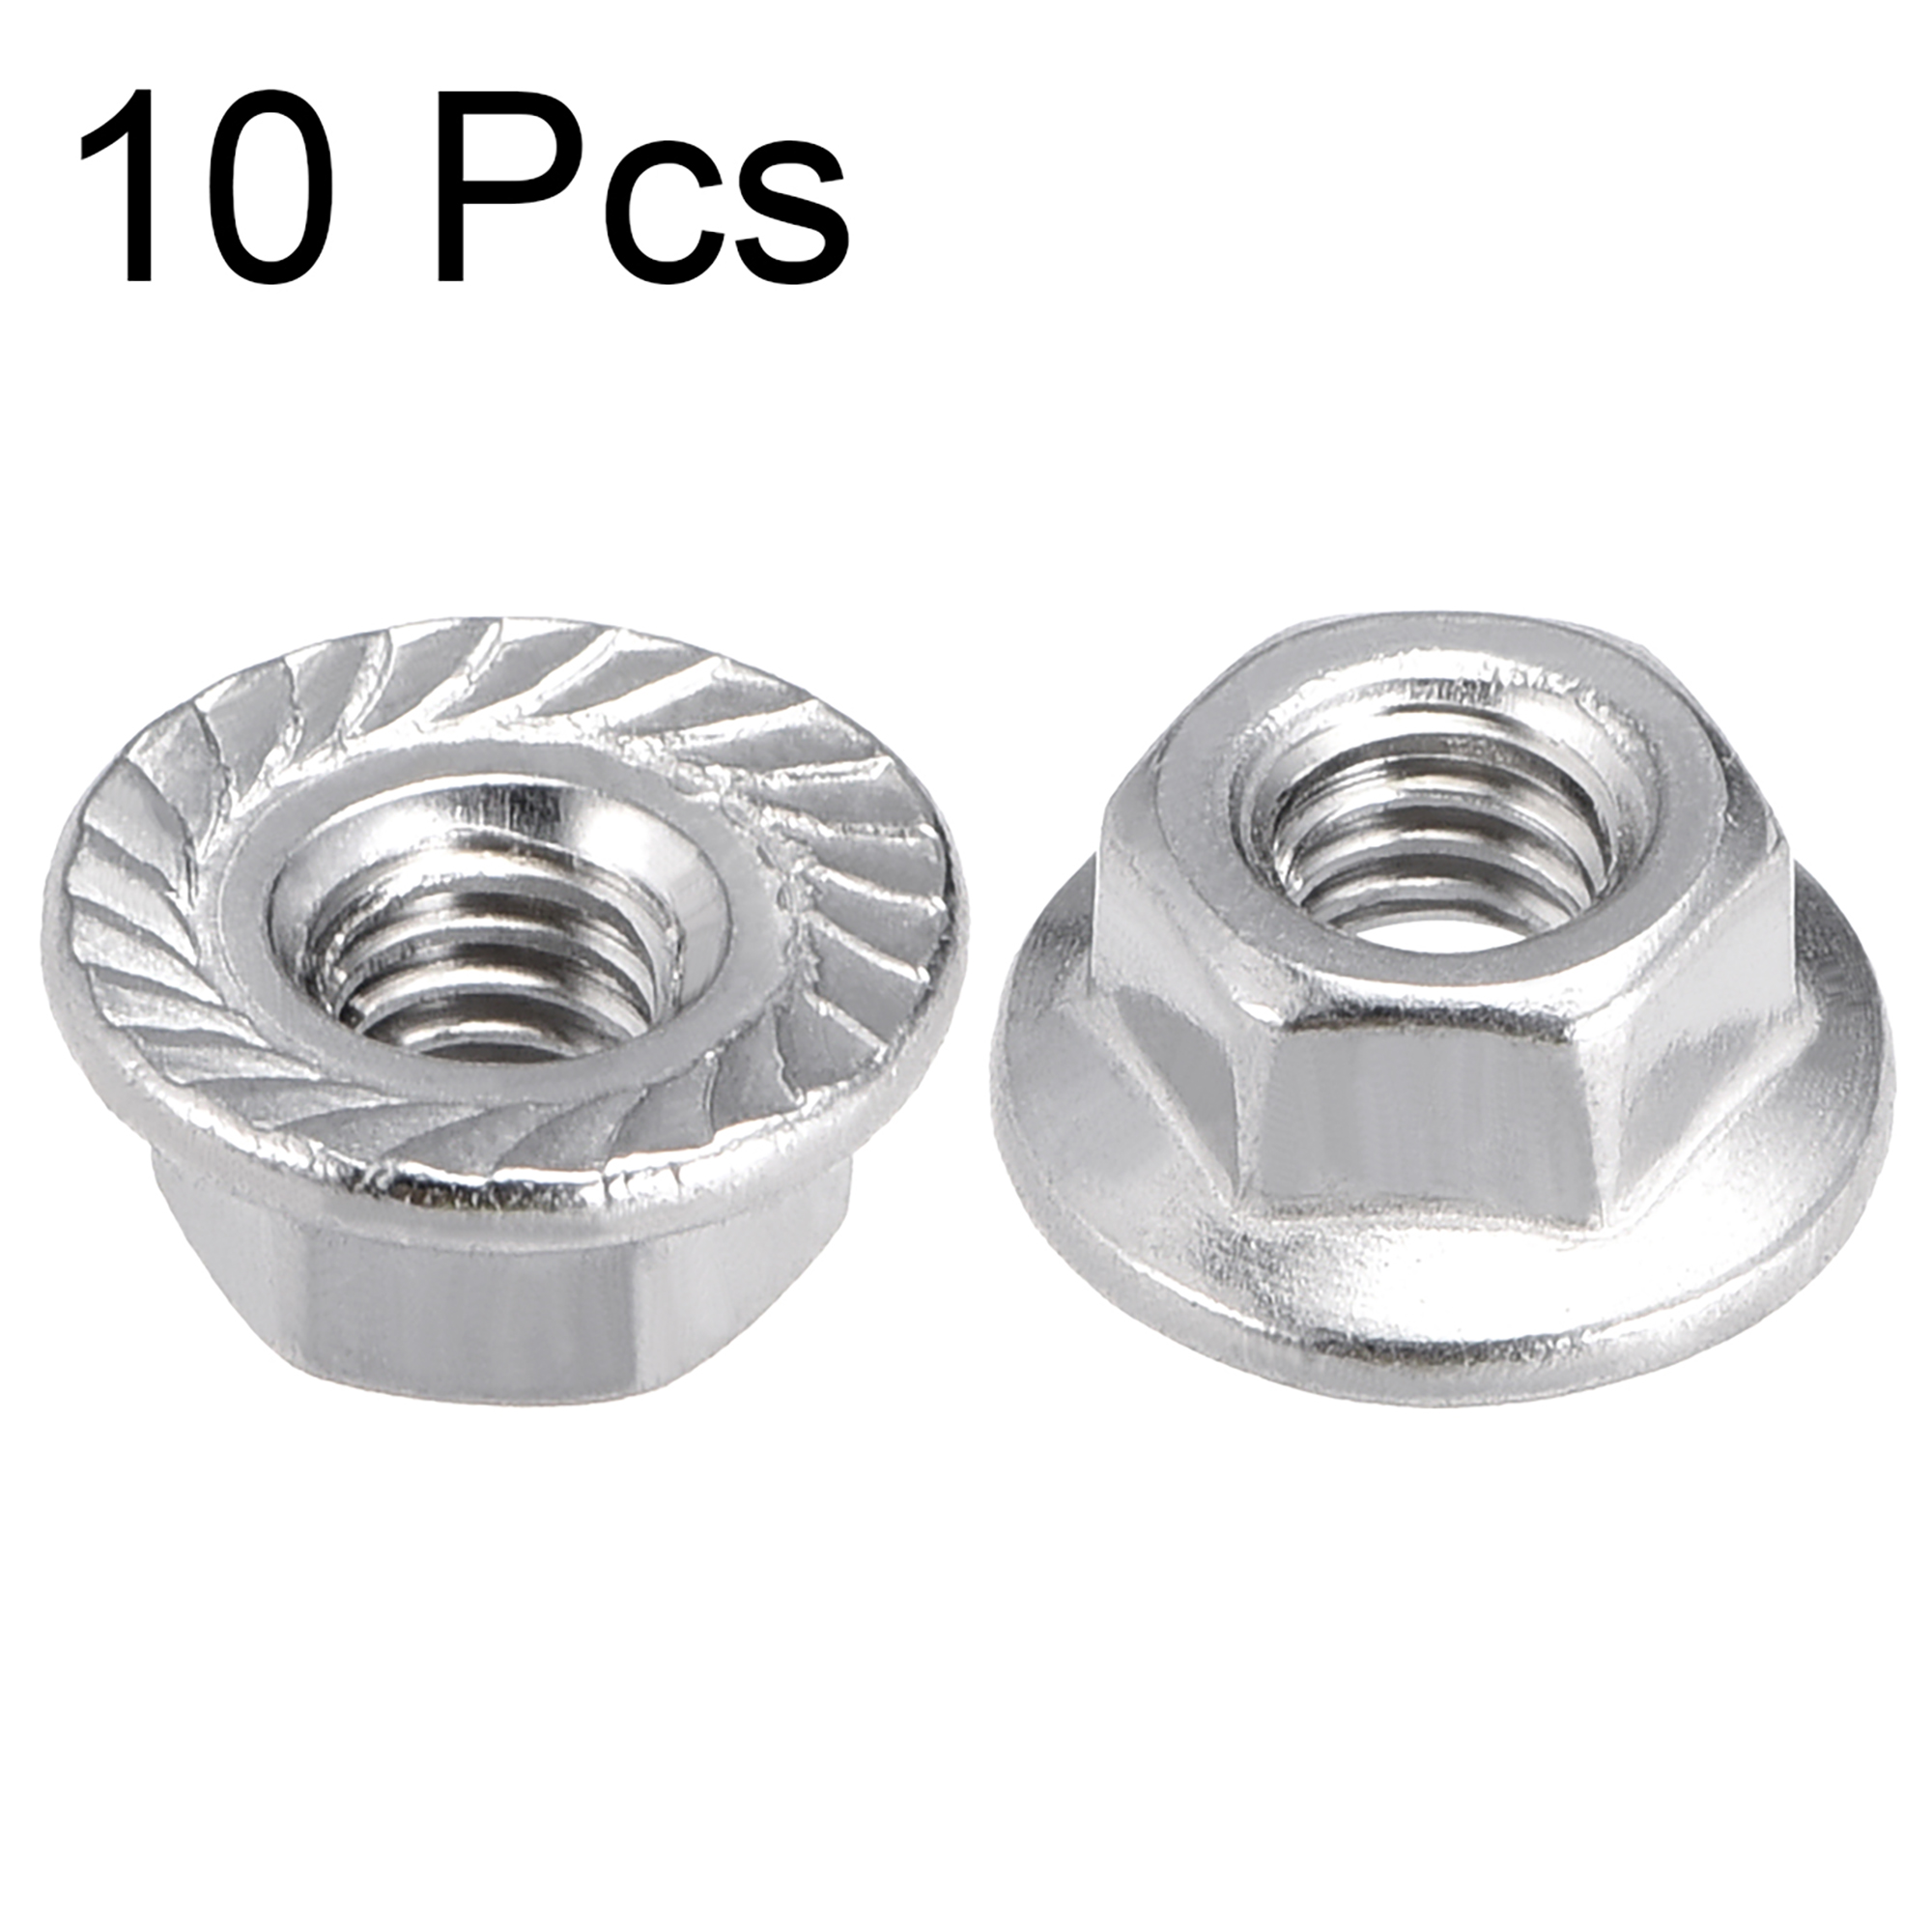 M4 Serrated Flange Hex Lock Nuts, 316 Stainless Steel, 10 Pcs - image 2 de 3